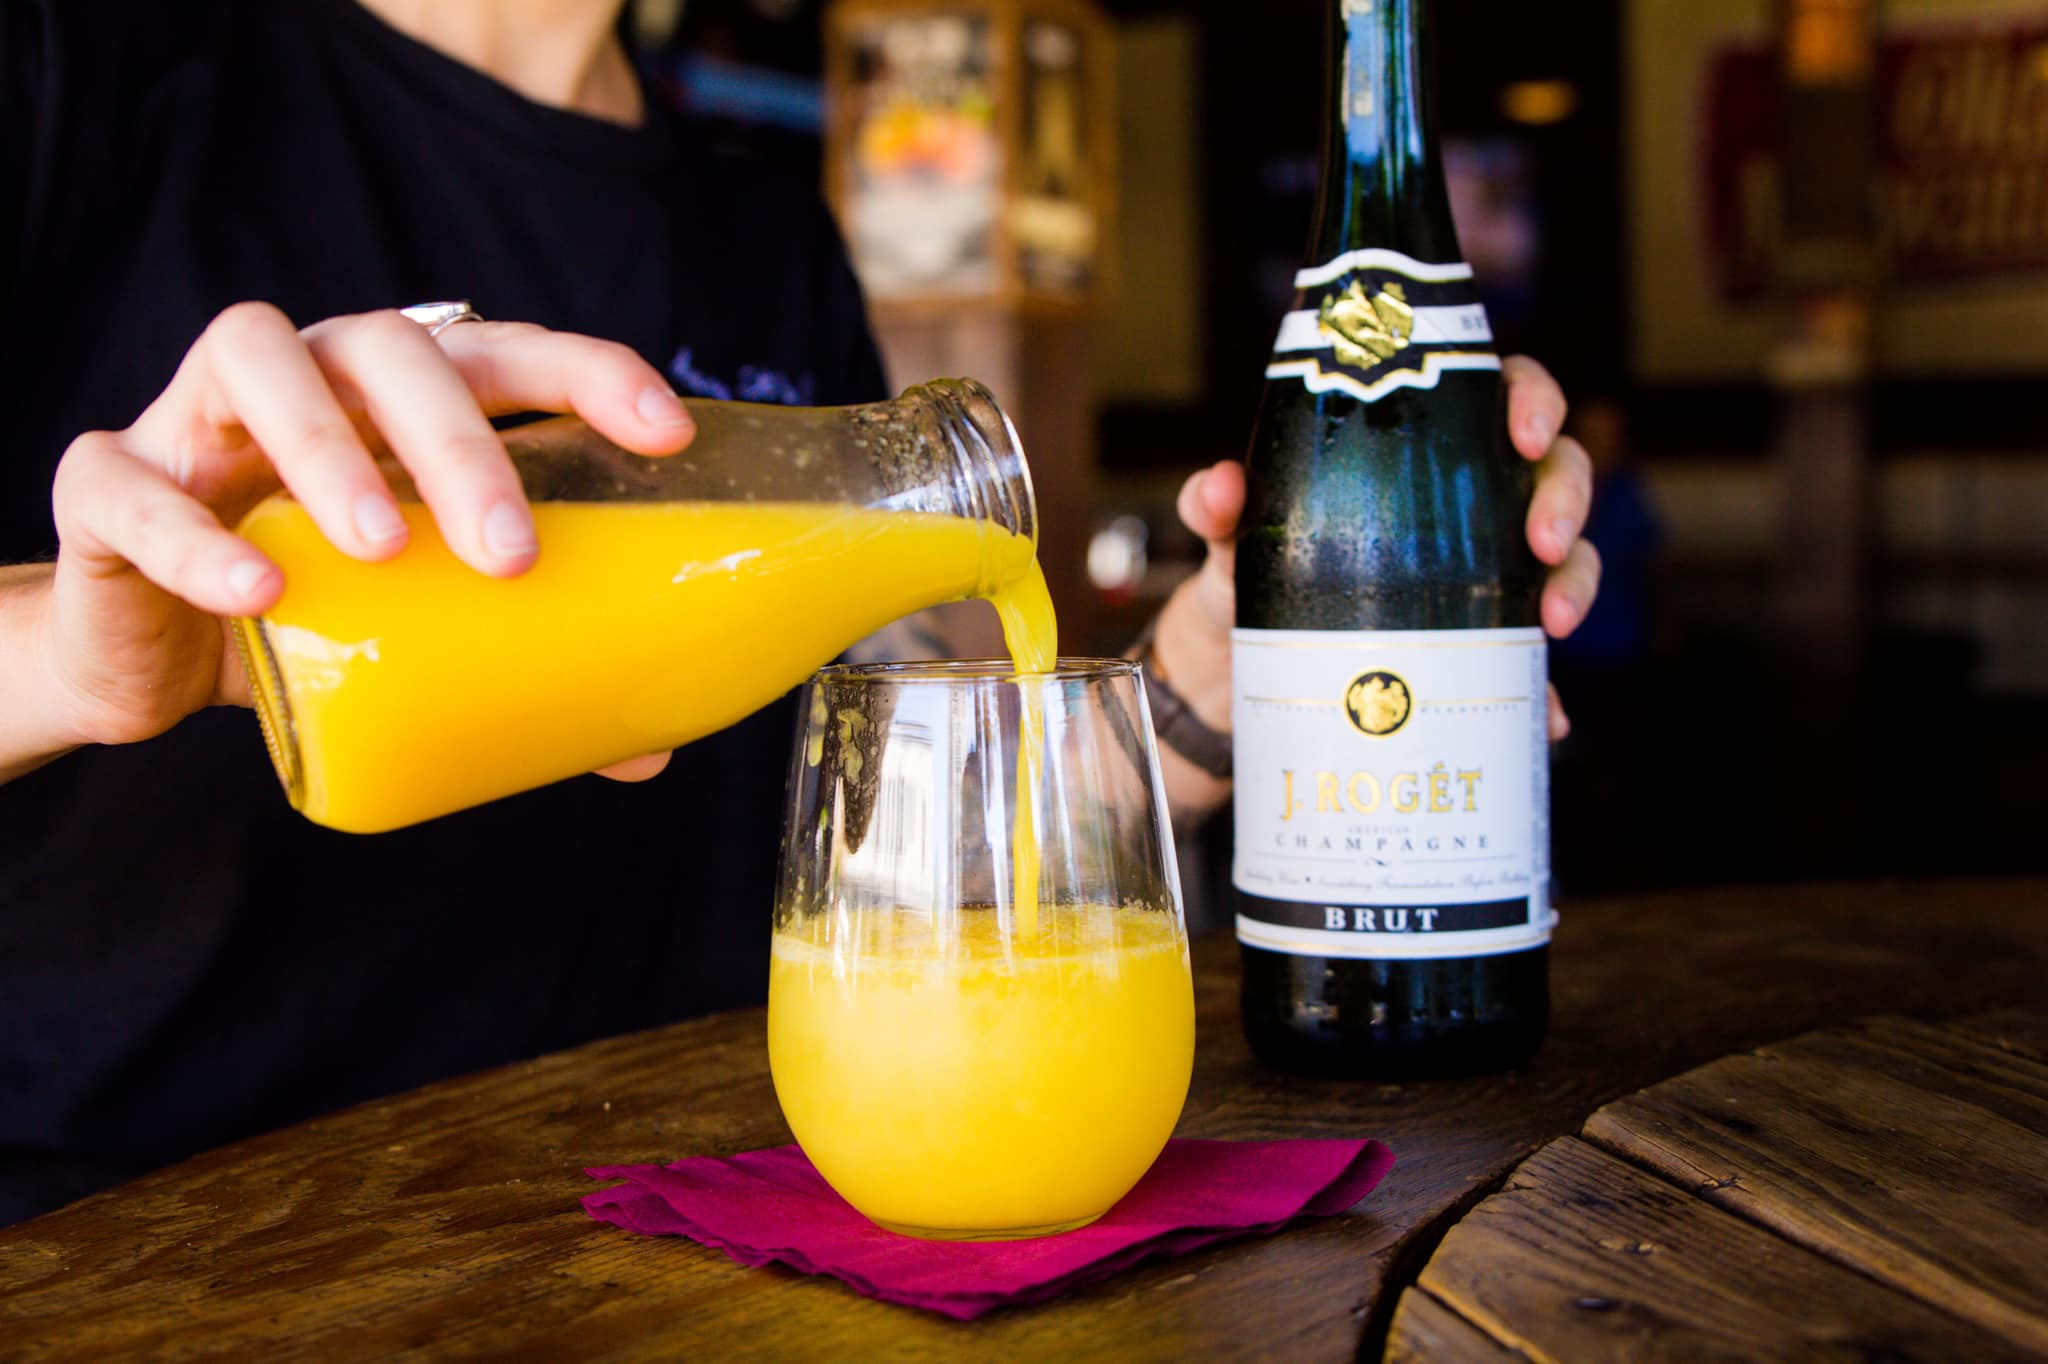 Bootlegger bottomless mimosa weekend brunch